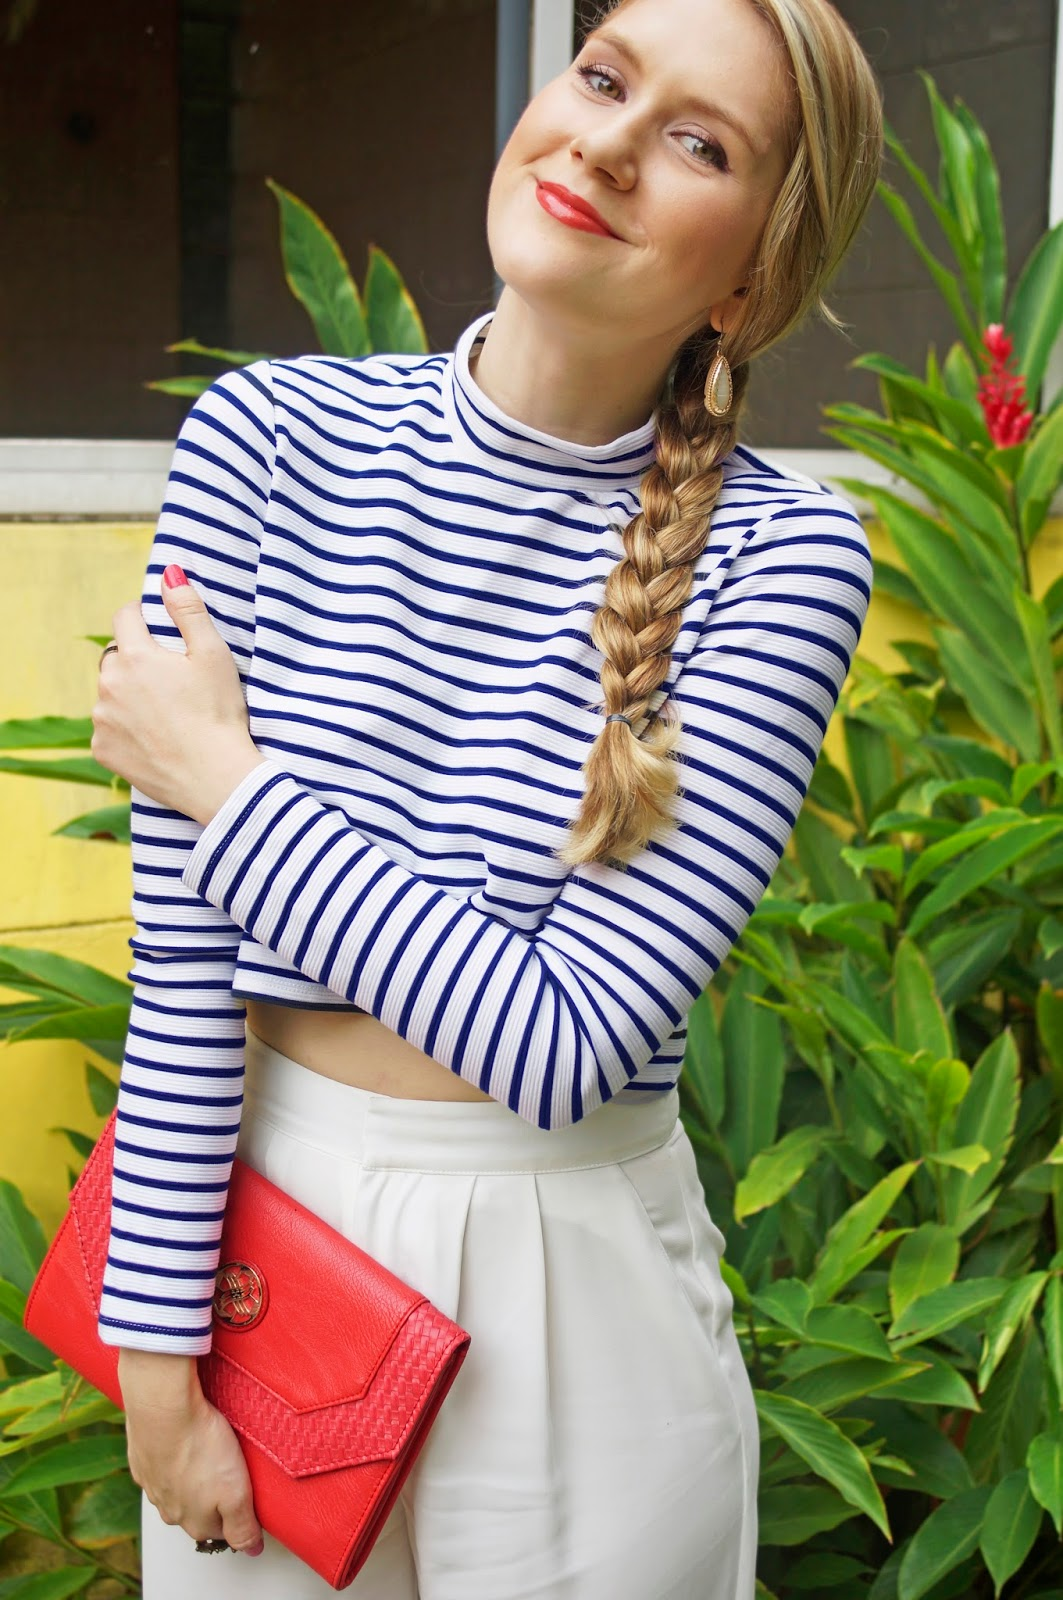 This striped shirt goes great with simple white pants!